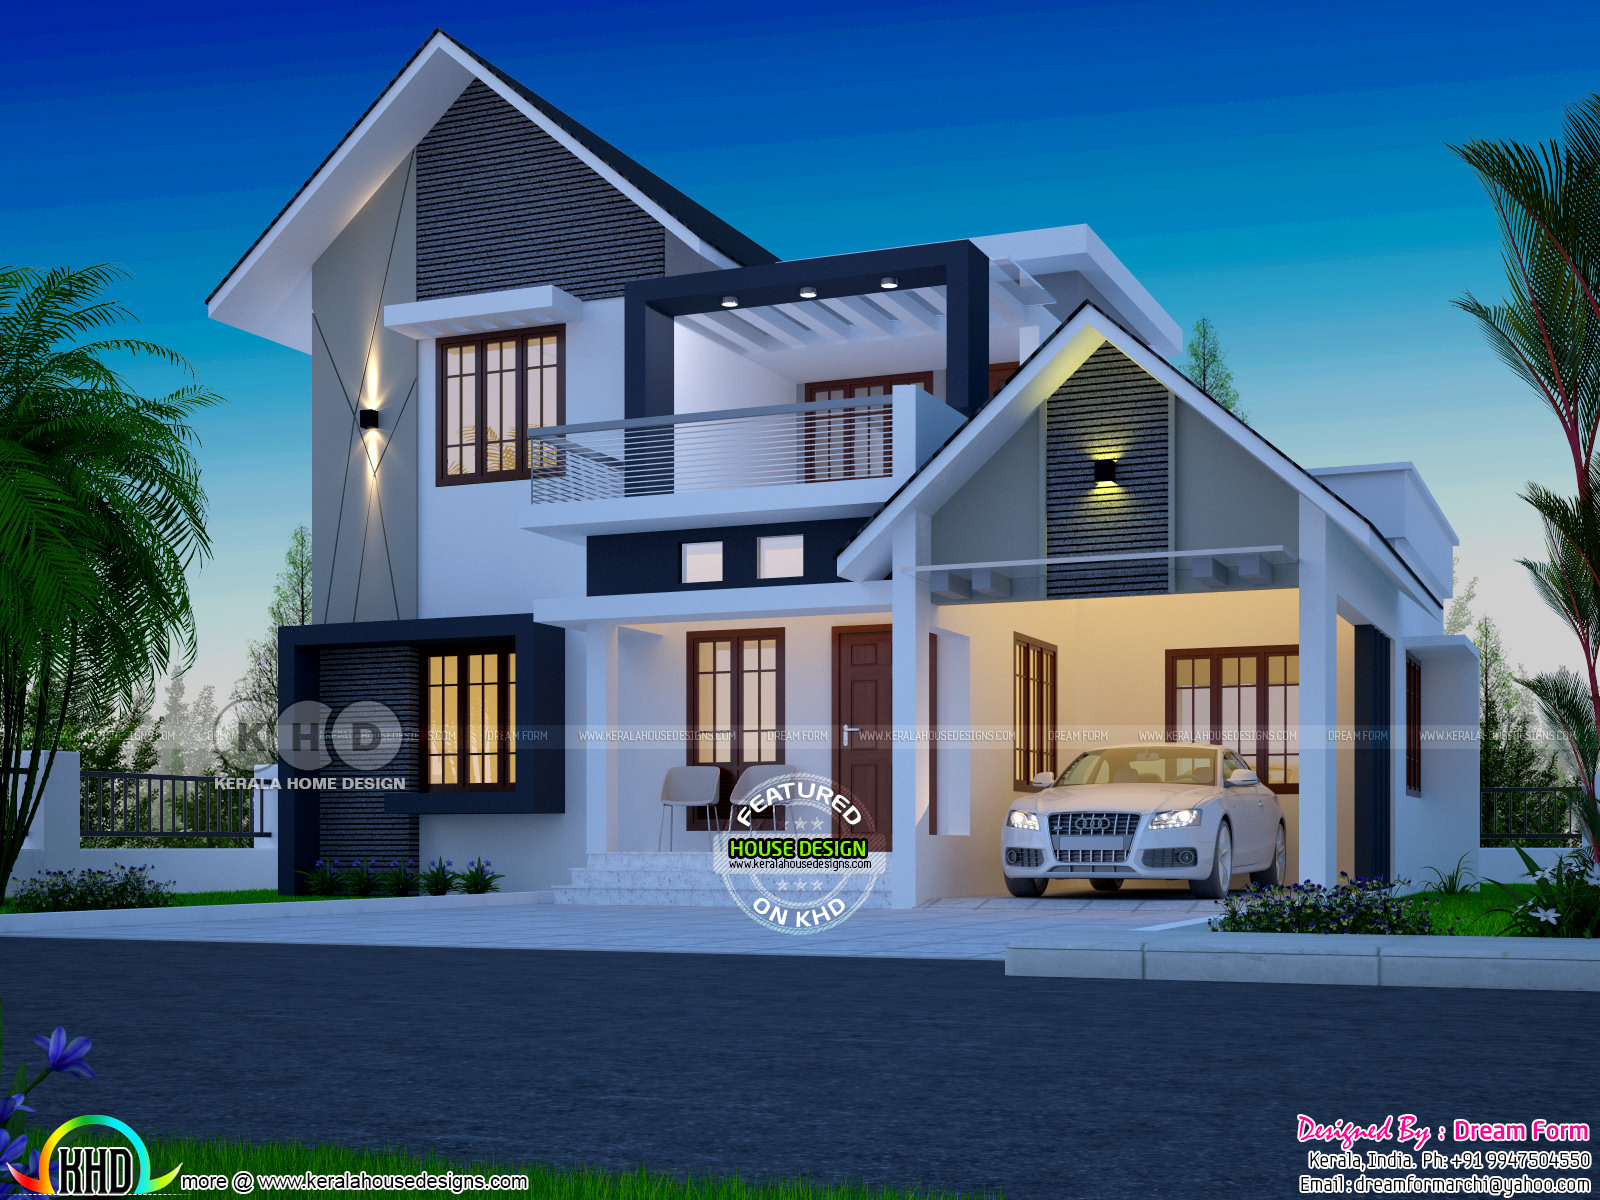 latest house designs 1750 square feet 4 bedroom double floor new modern home 1722 square feet 4 bedroom cute double storied house. Cute double storied modern  home ...